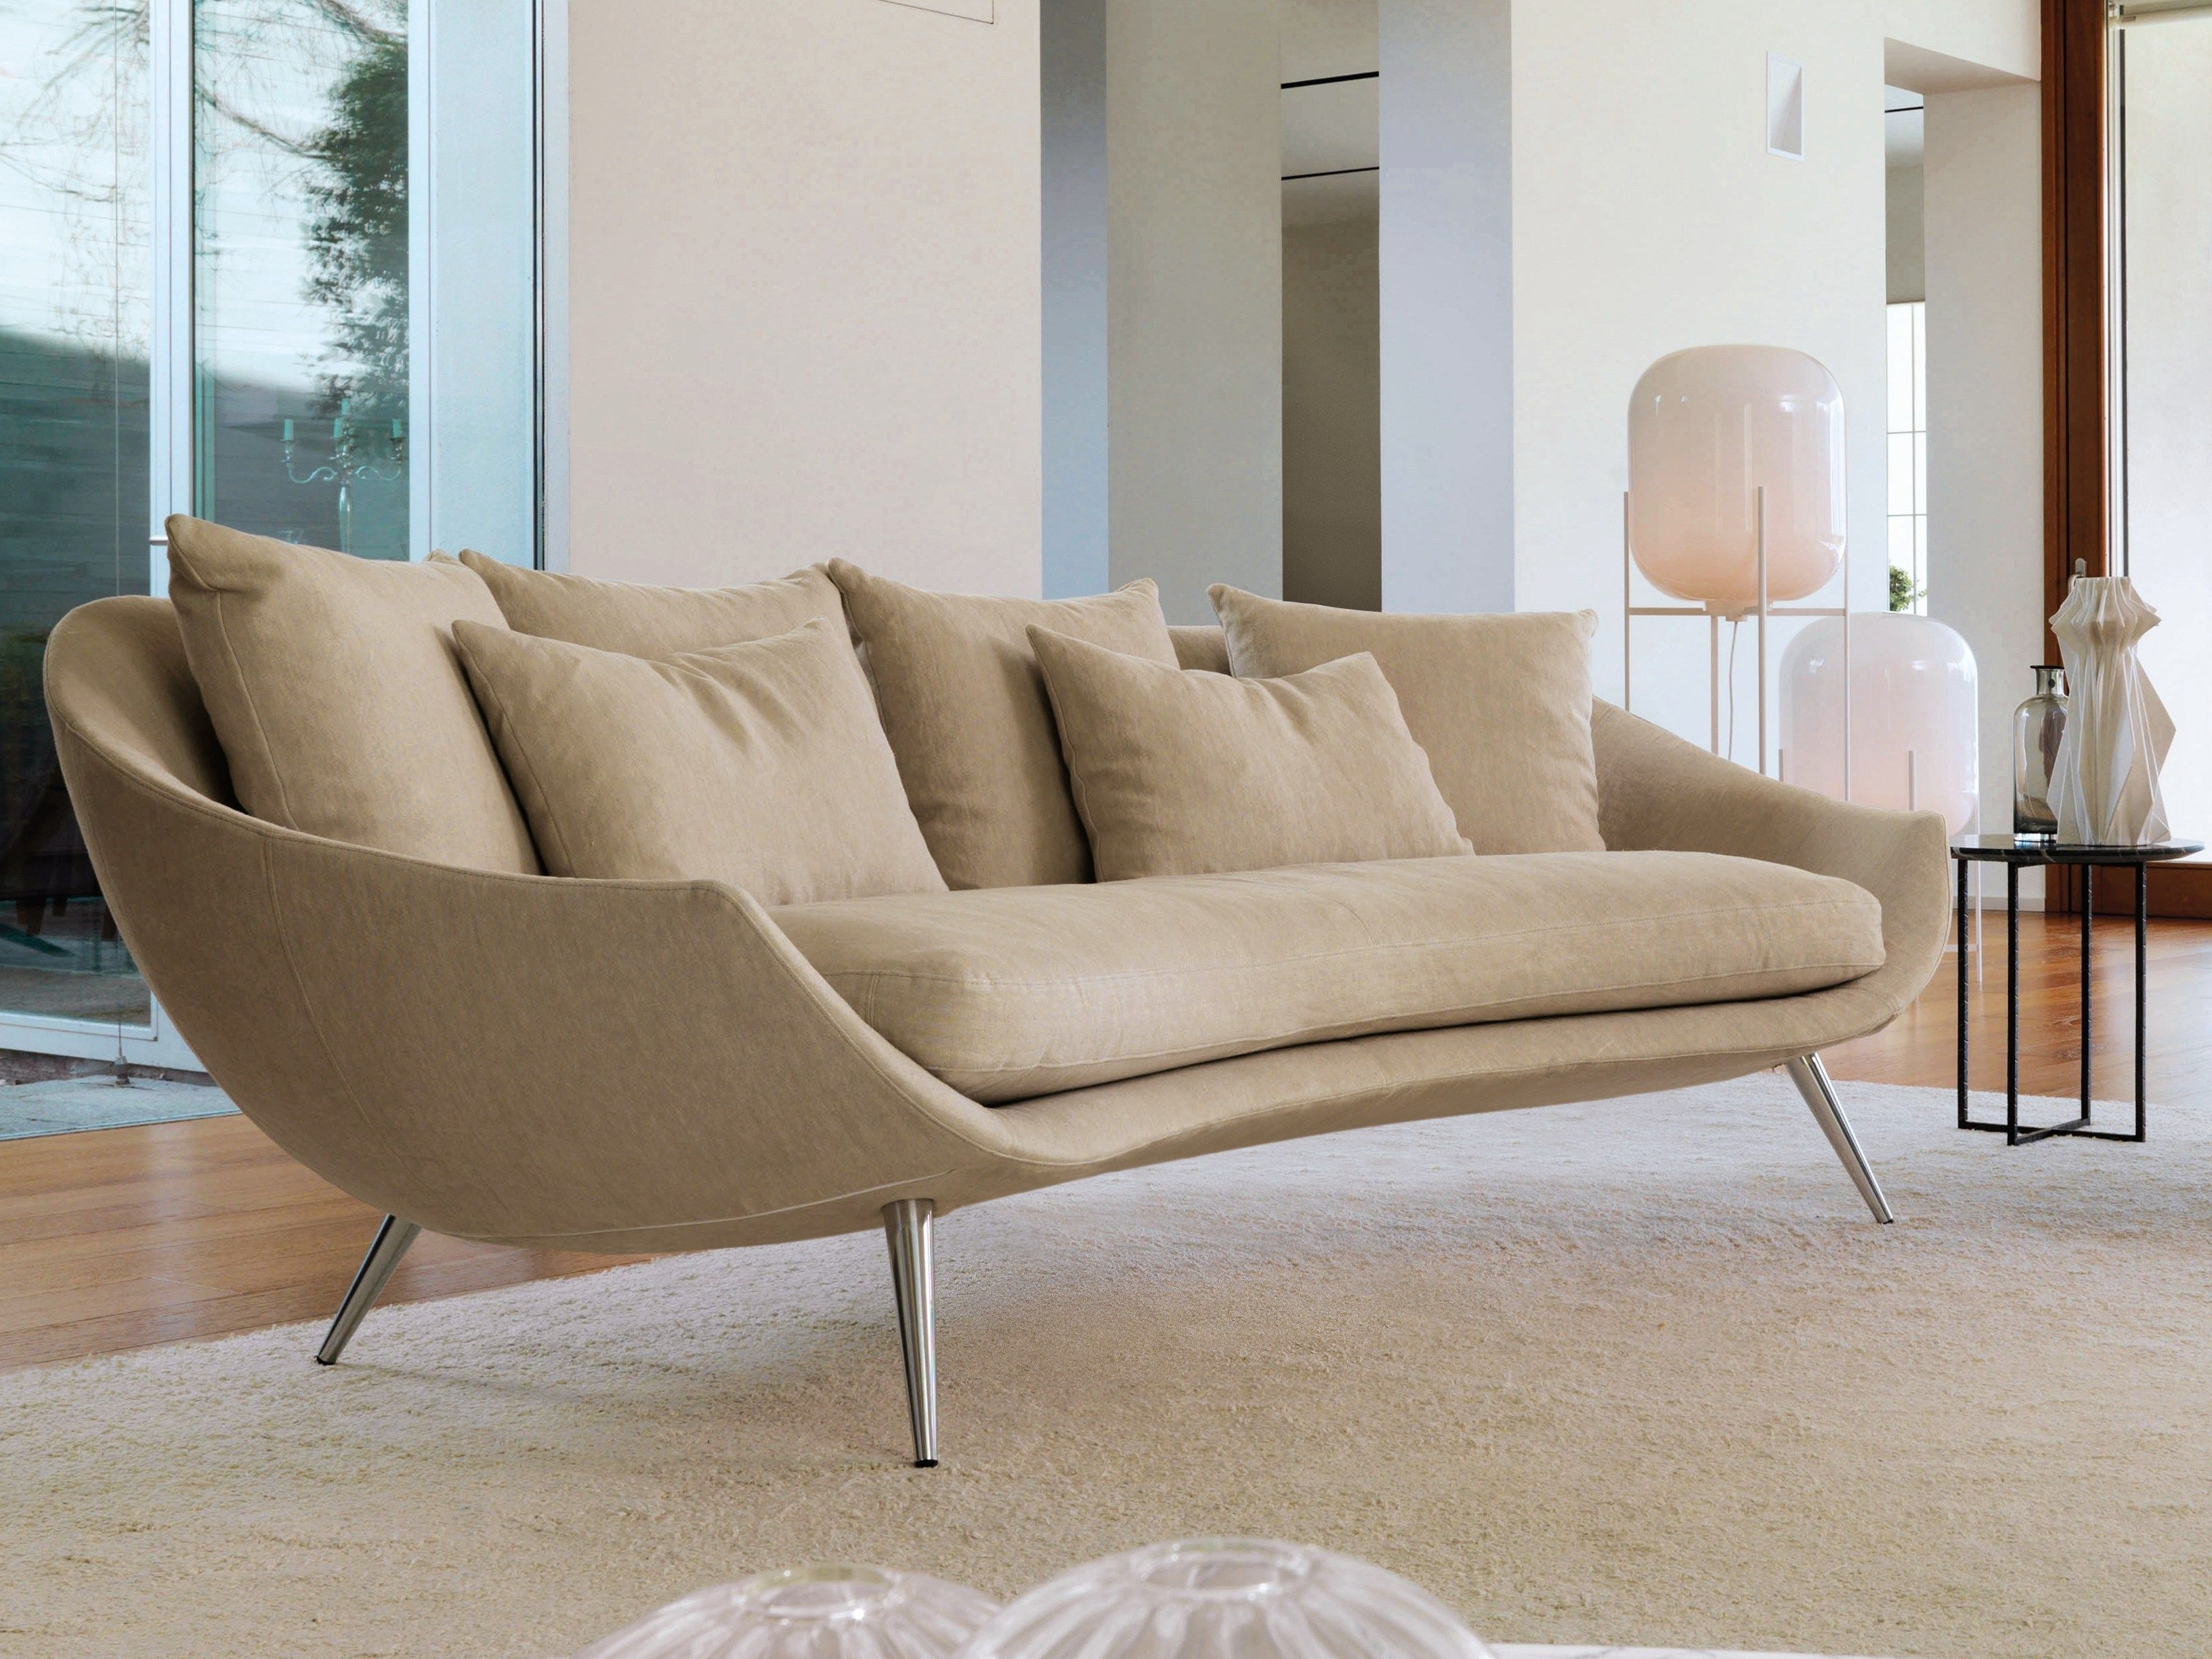 Sofas With Removable Cover With Latest Sofa With Removable Cover Avìdésirée Design Jai Jalan (View 15 of 15)